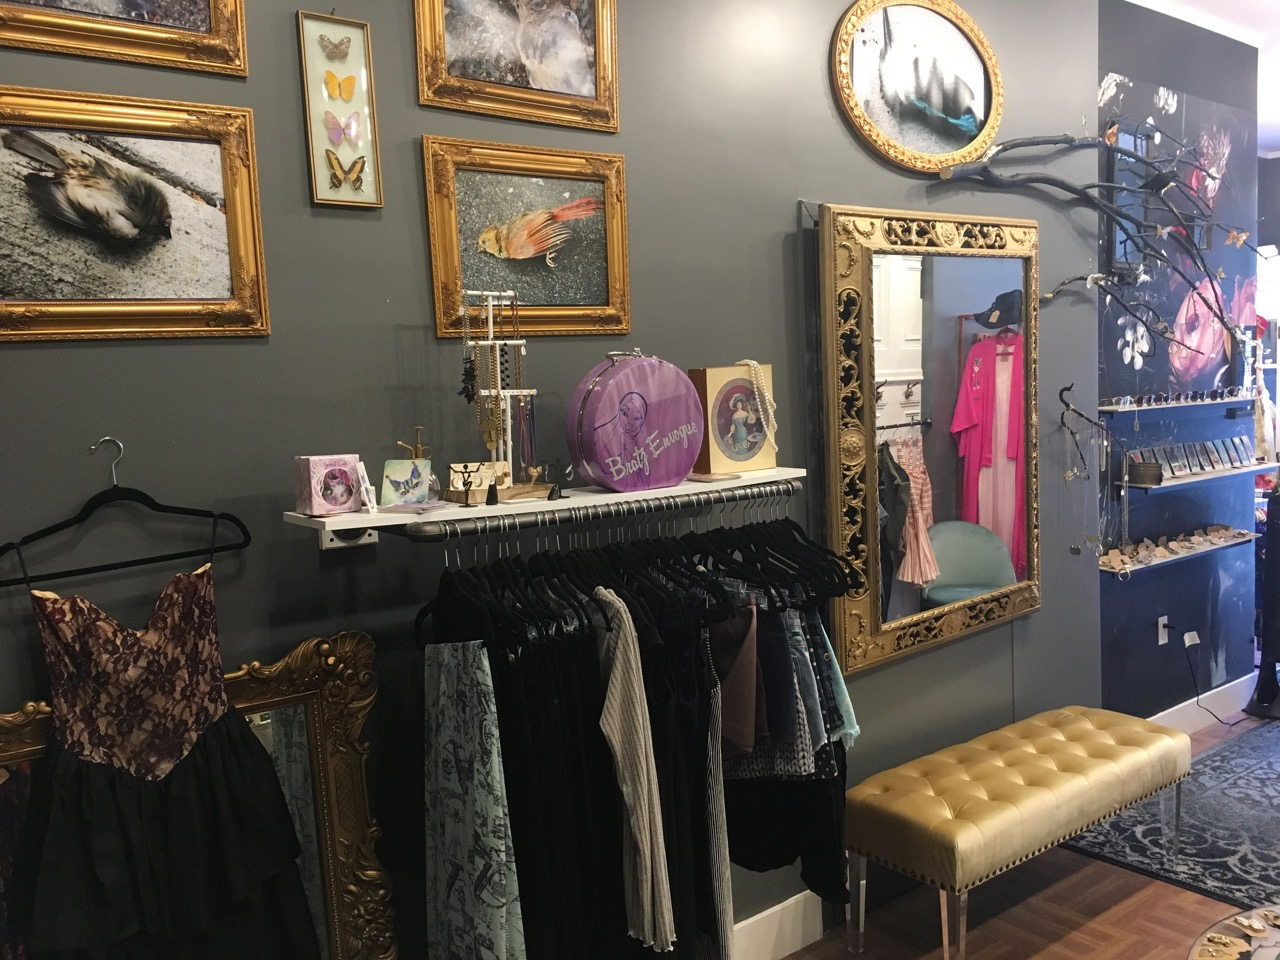 The Shop - Candy Colored Girl is one of the only vintage, second hand stores in Bed Stuy Brooklyn We are very neighborhood focused and love seeing our neighbors as well as new faces come through the door.